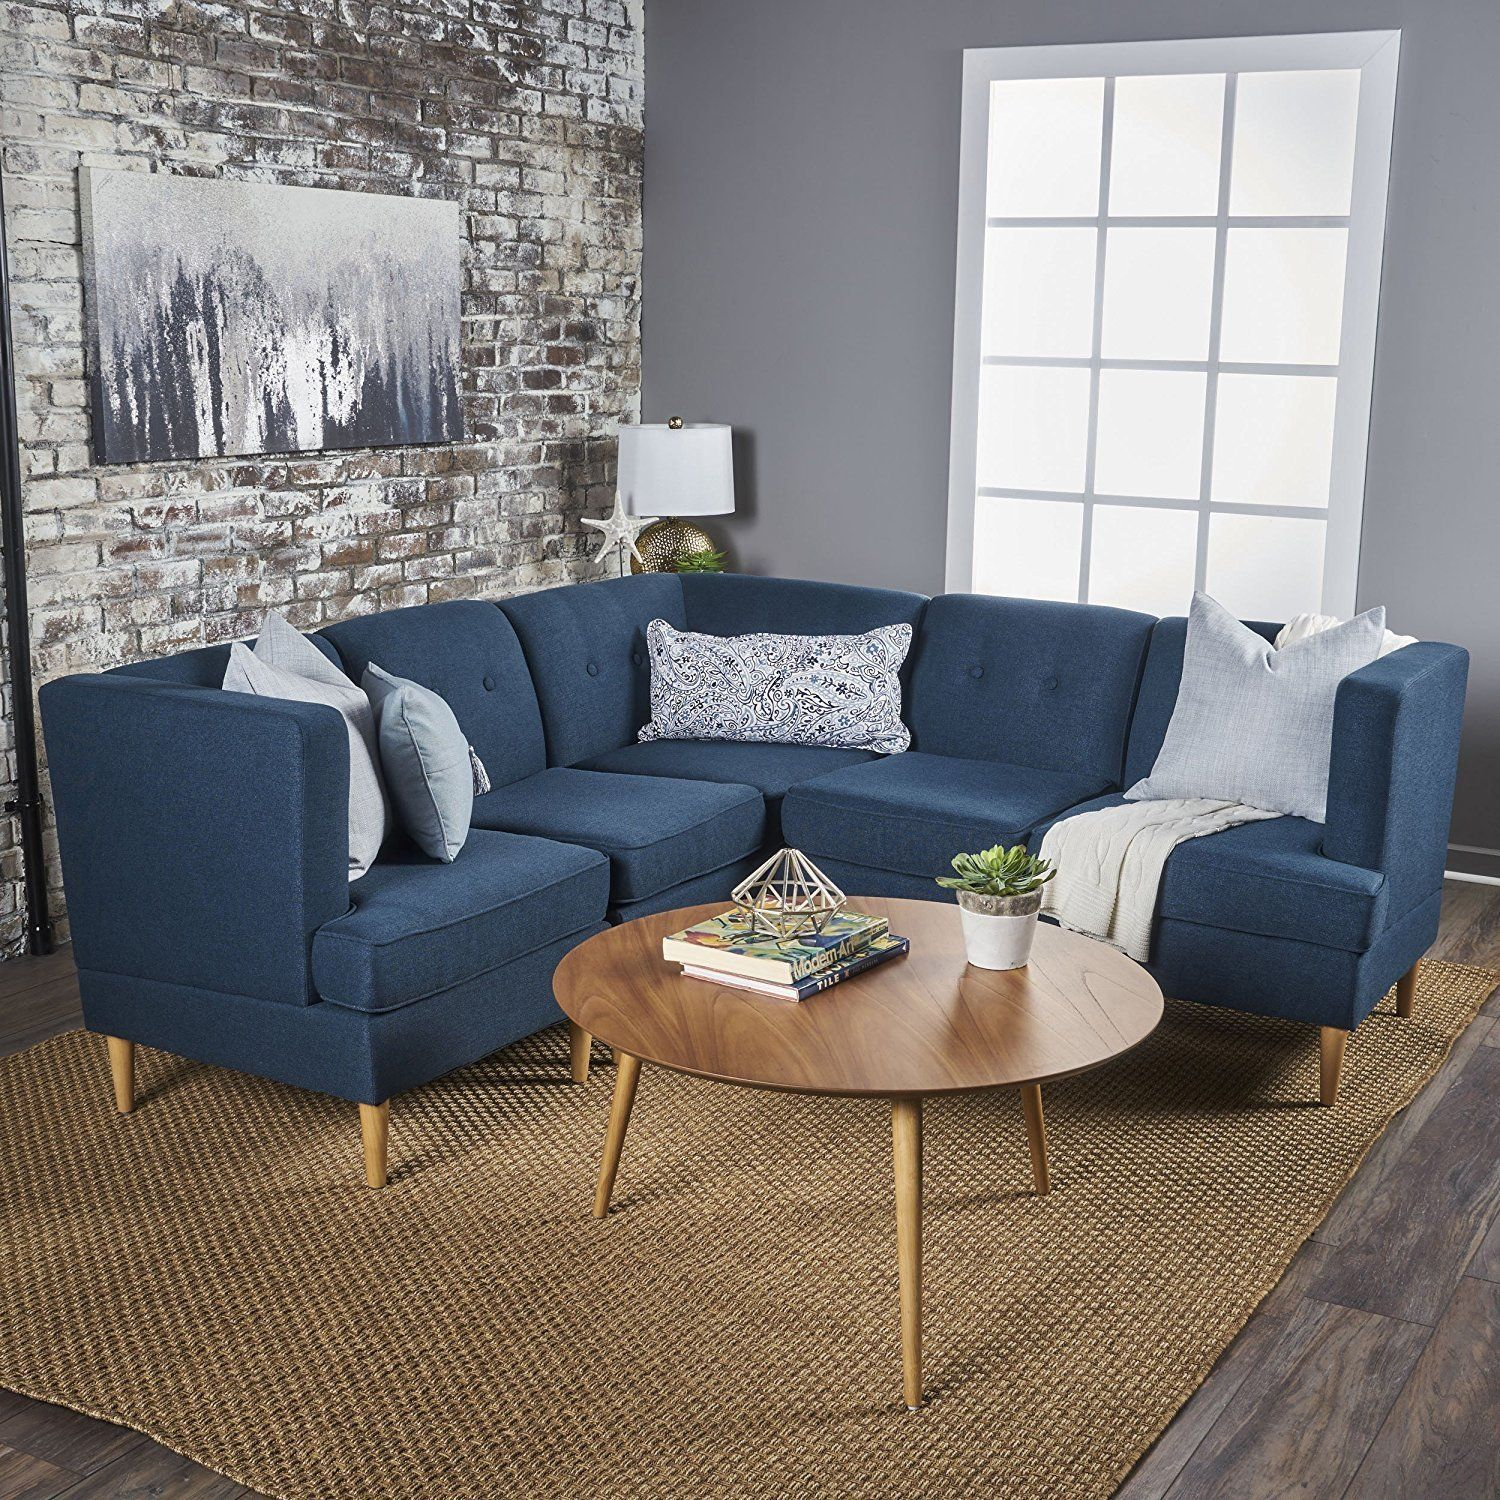 Klassische Sofas You Can Assemble Moving Here Are 7 Sites To Buy Furniture That S Easy To Move